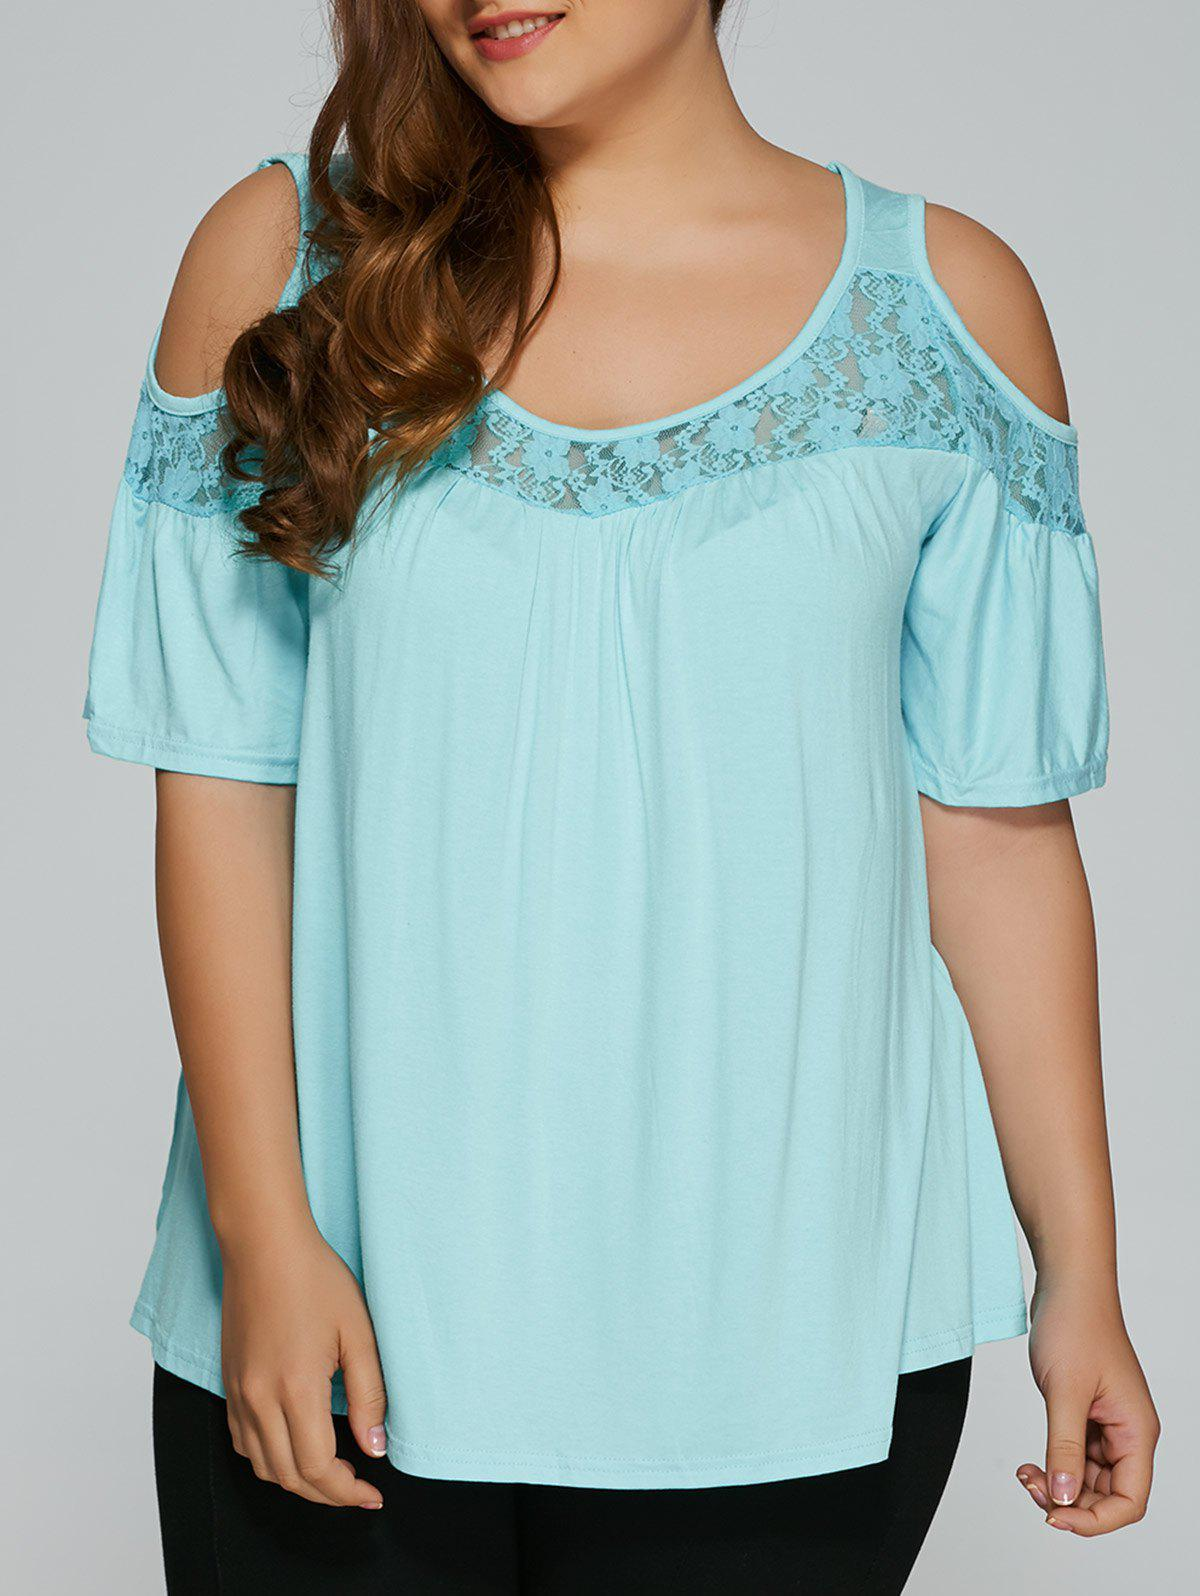 Plus Size Lace Insert Cut Out T-ShirtWOMEN<br><br>Size: 3XL; Color: LIGHT BLUE; Material: Lace,Polyester; Shirt Length: Regular; Sleeve Length: Short; Collar: Scoop Neck; Style: Fashion; Season: Summer; Pattern Type: Patchwork; Weight: 0.202kg; Package Contents: 1 x T-Shirt;